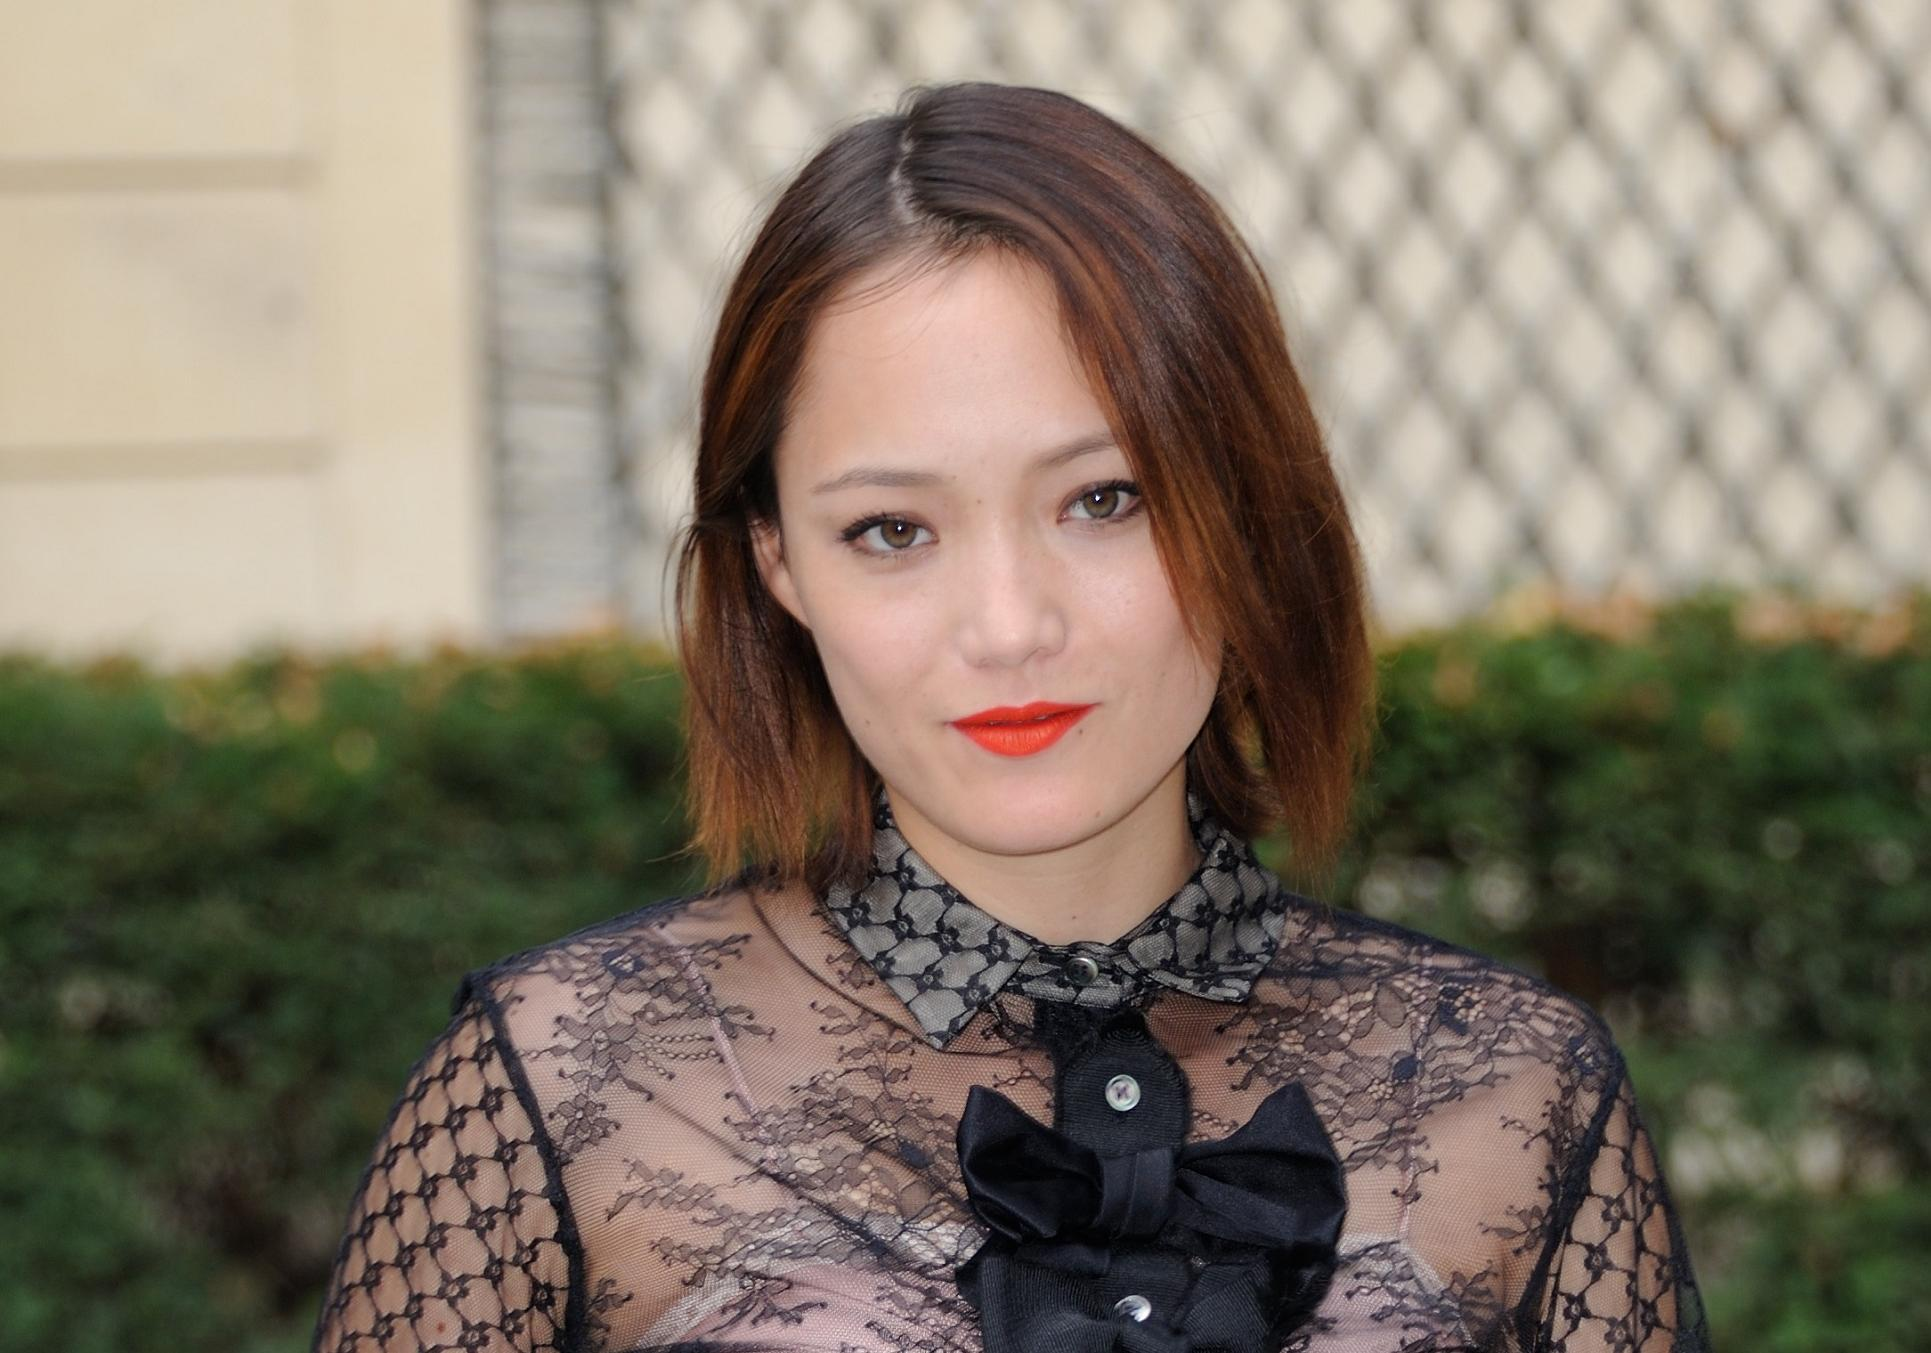 pom klementieff une actrice fran aise l affiche des gardiens de la galaxie 2 elle. Black Bedroom Furniture Sets. Home Design Ideas